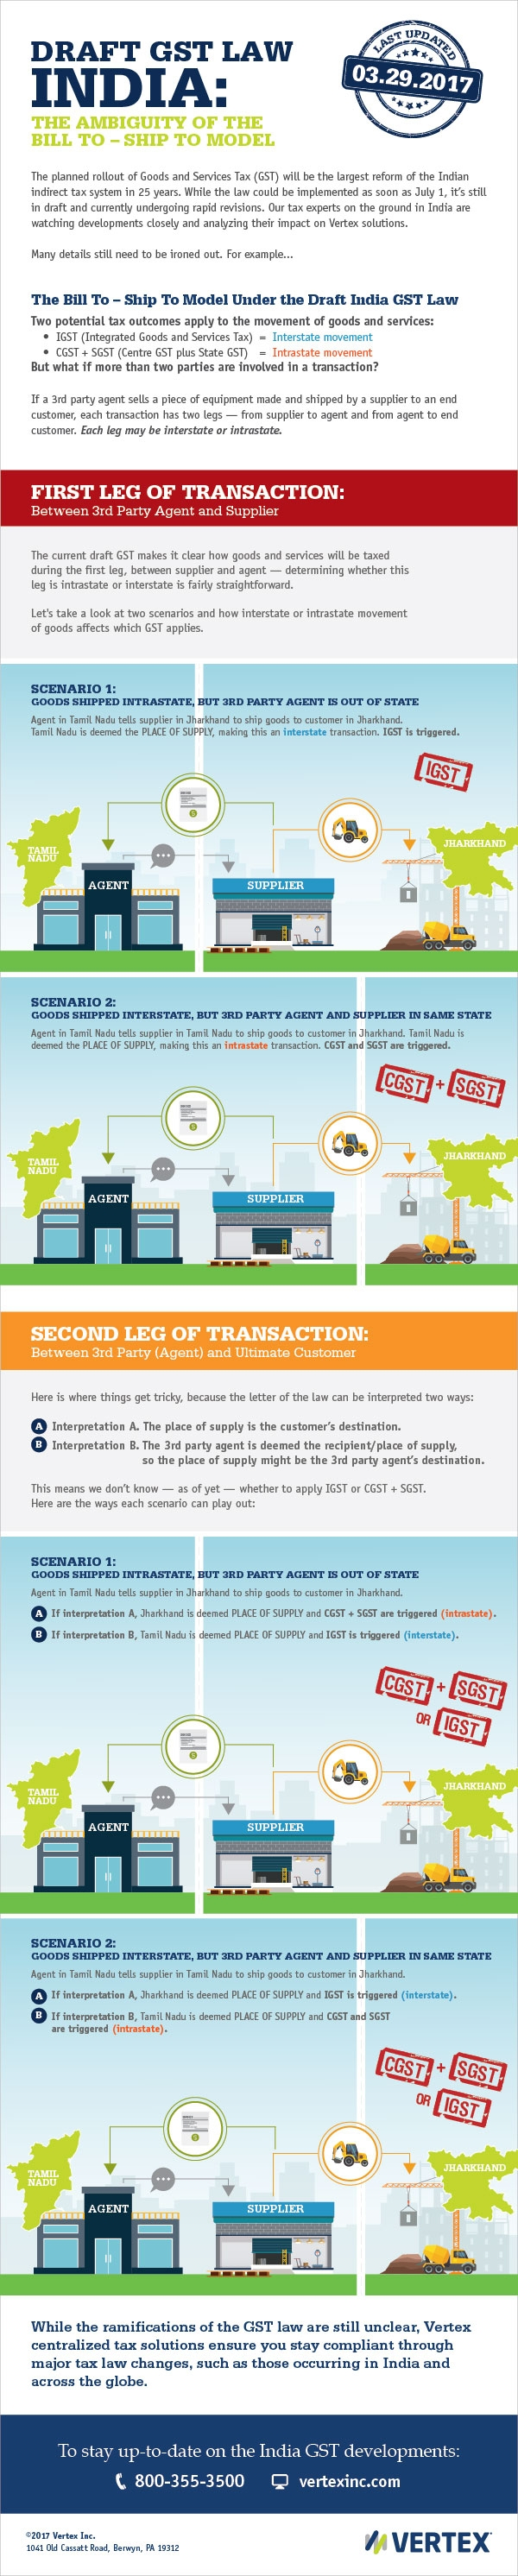 Bill-to Ship-to Model Infographic